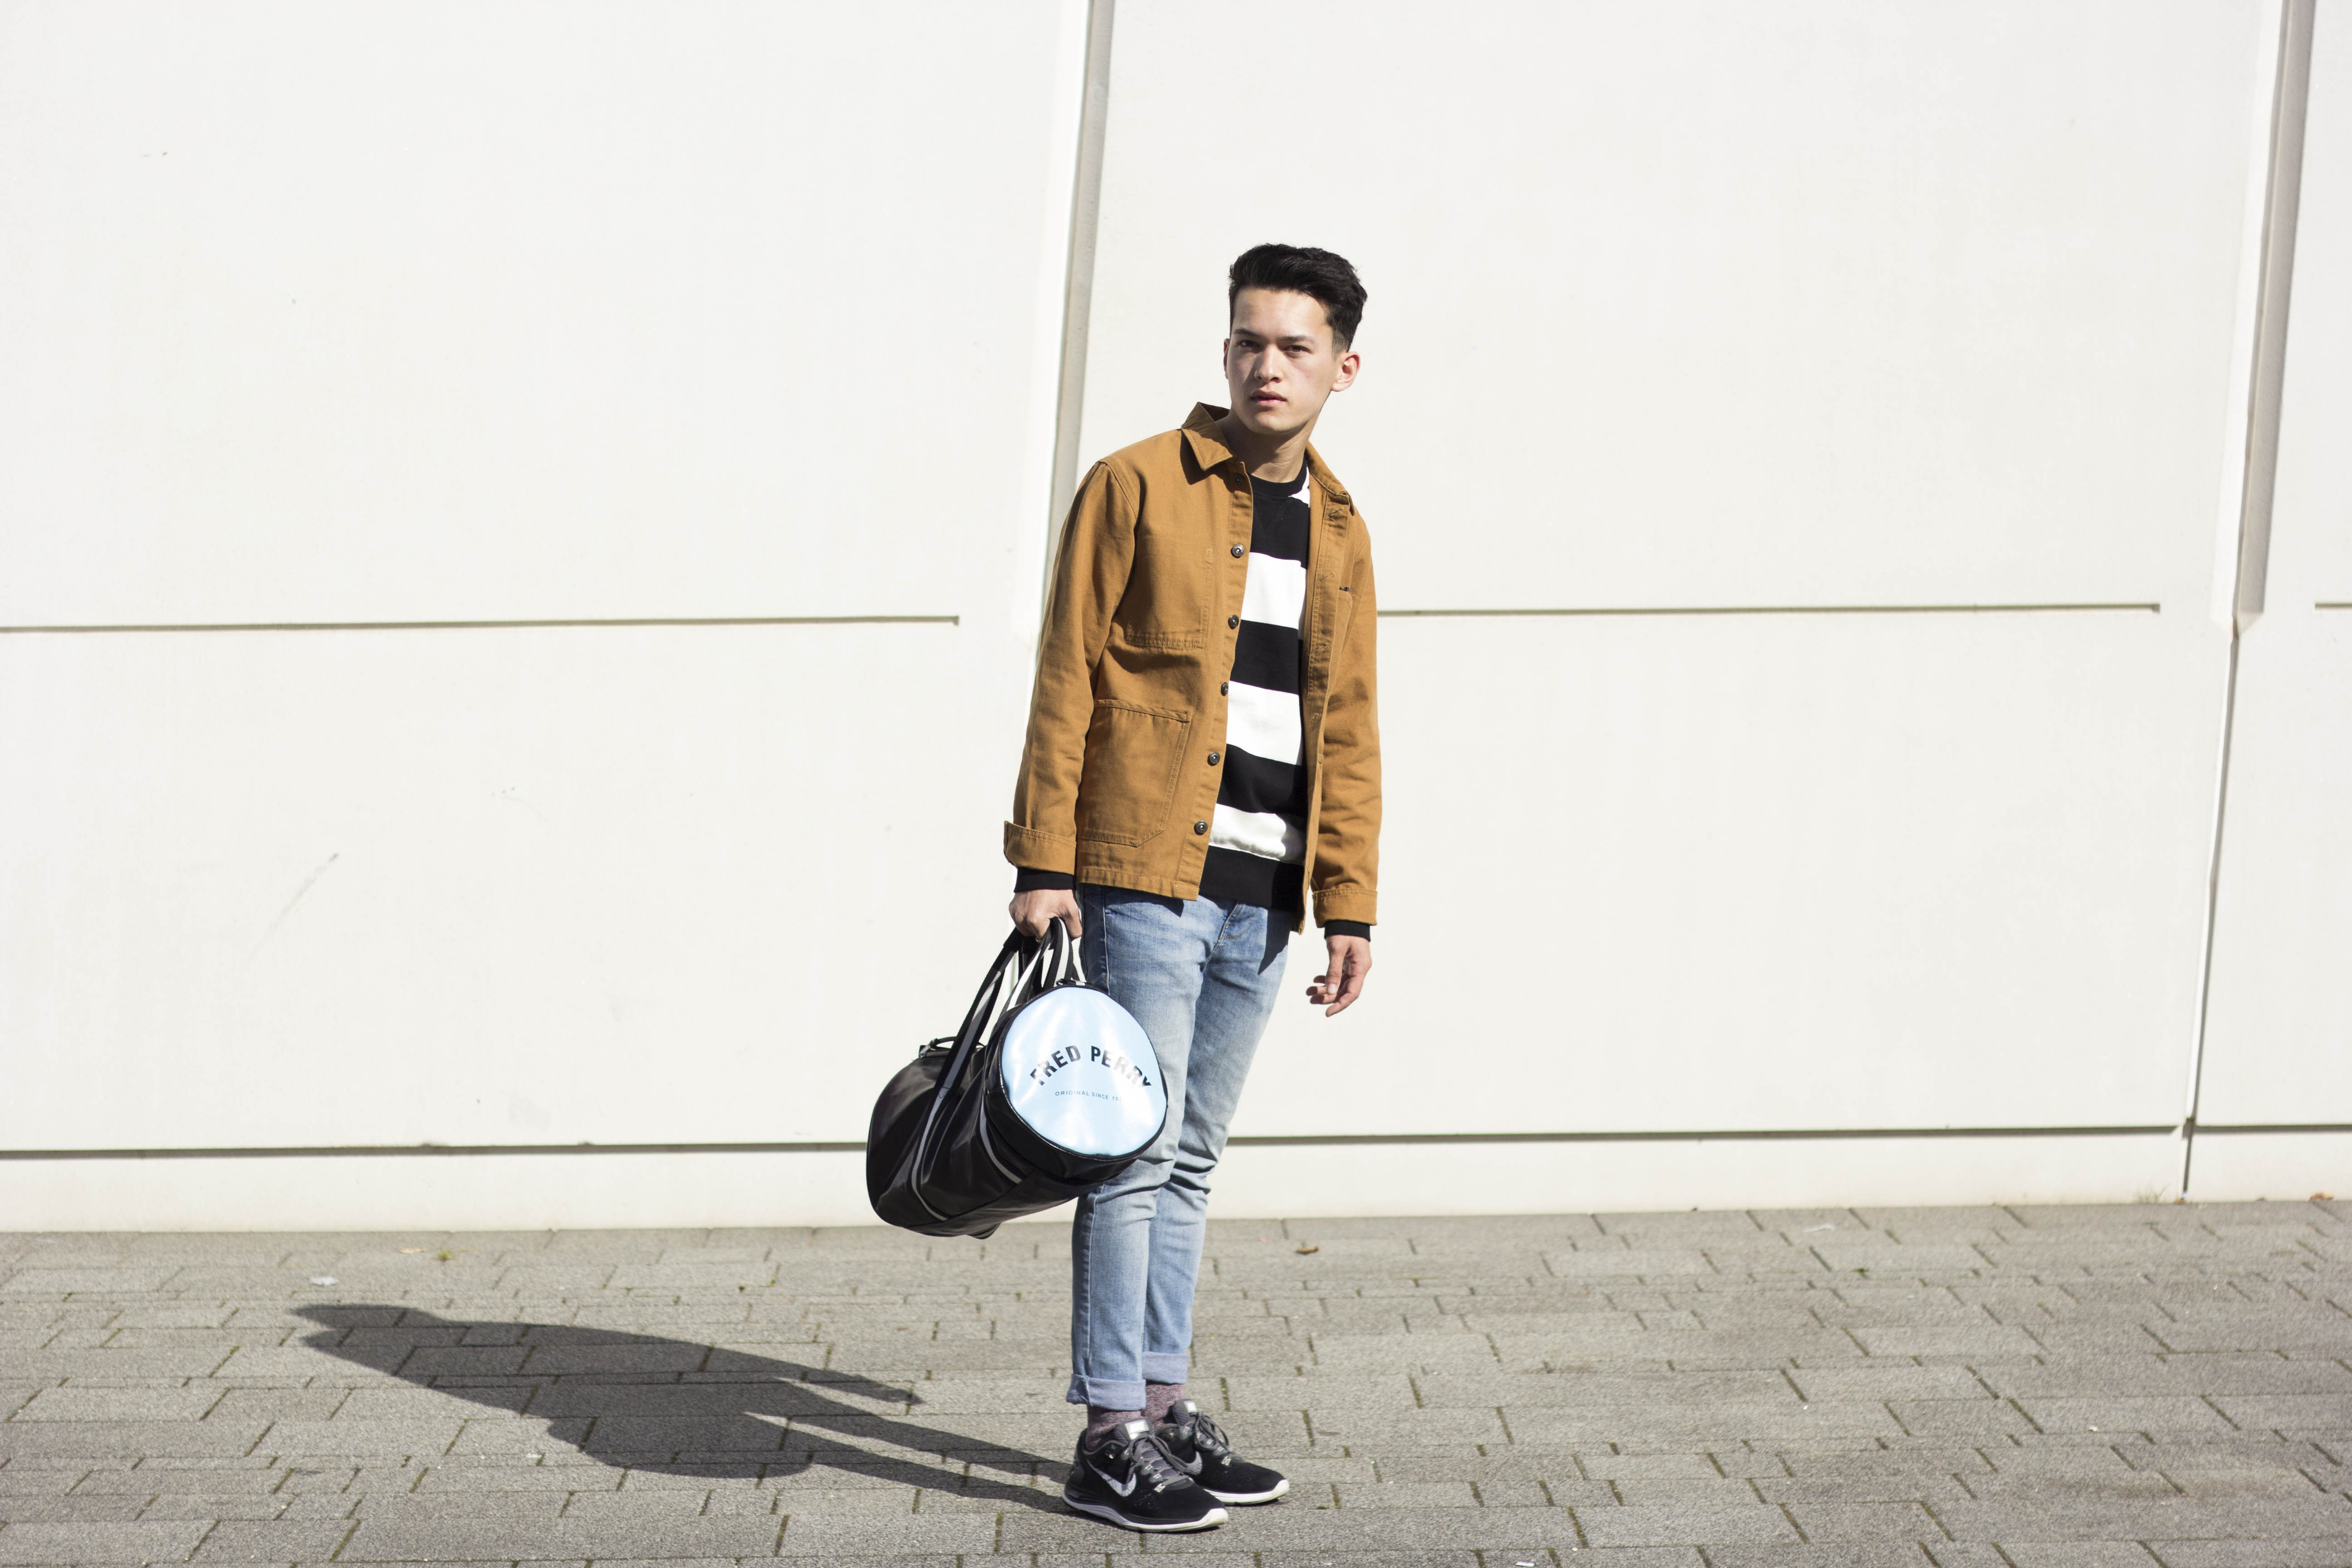 Jordan_Bunker_student_style_with_the_idle_man_1